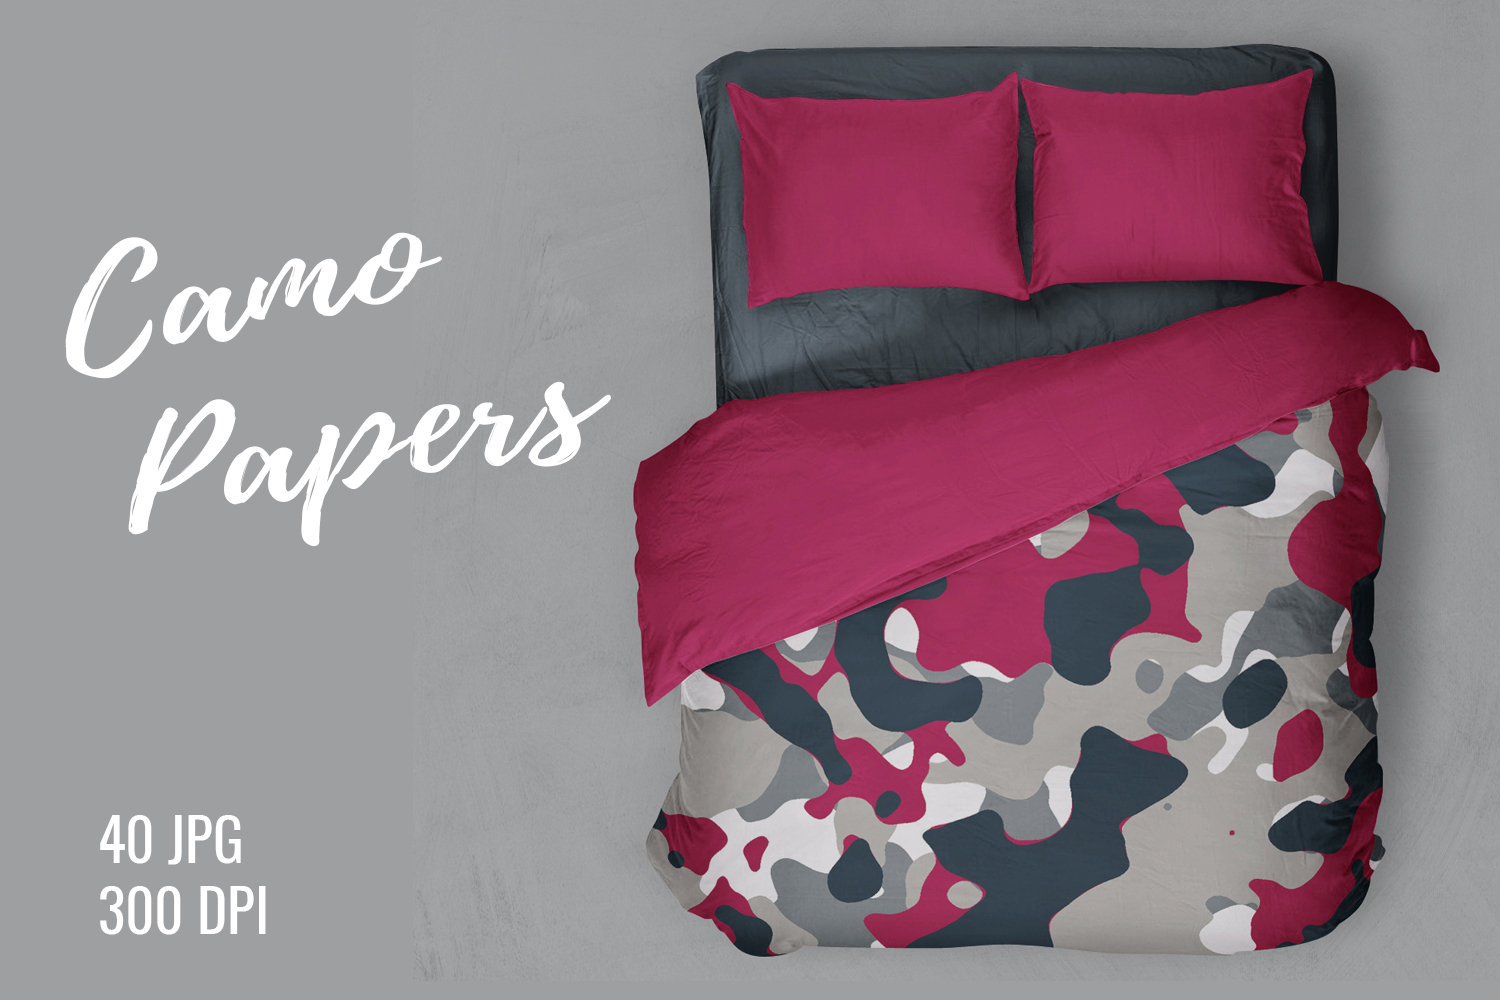 40 Alternative Camouflage Paper Designs example image 1